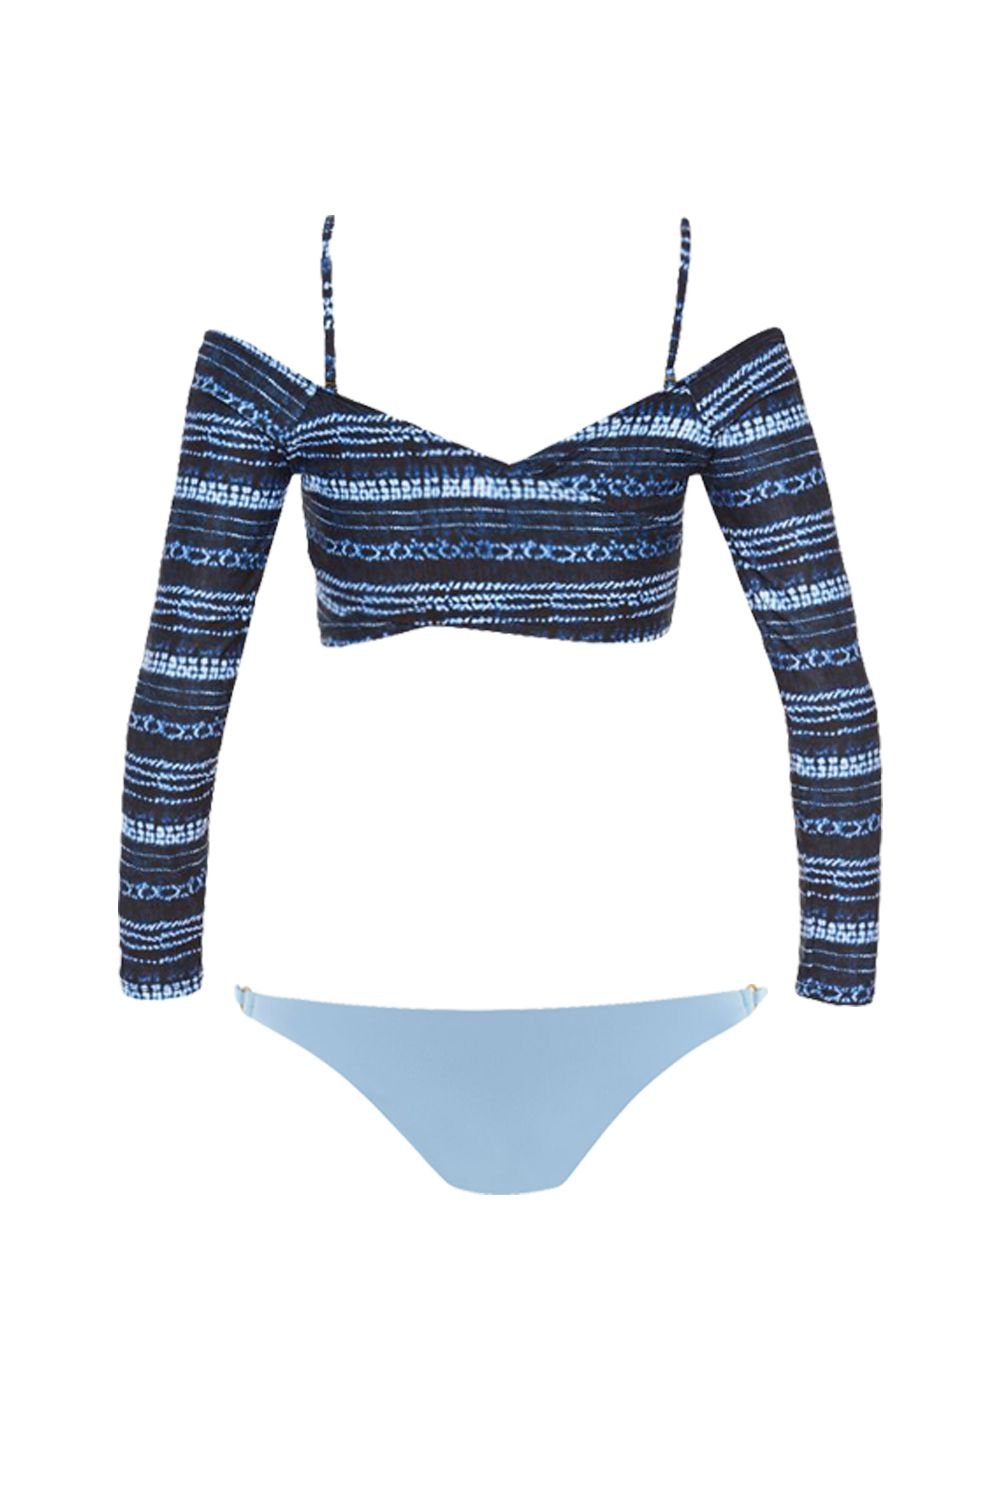 """<p>Another IRL-fashion-inspired lewk that emphasizes a body part most of us are weirdly proud of.</p><p>Top, $125, <a href=""""https://www.lspace.com/collections/swim/products/midnight-caravan-callie-top-itsy-bottom"""" target=""""_blank"""" data-tracking-id=""""recirc-text-link"""">lspace.com</a>; bottoms, $84, <a href=""""https://www.lspace.com/products/bowie-wrap-swim-top-redondo-bottom"""" target=""""_blank"""" data-tracking-id=""""recirc-text-link"""">lspace.com</a>.</p>"""